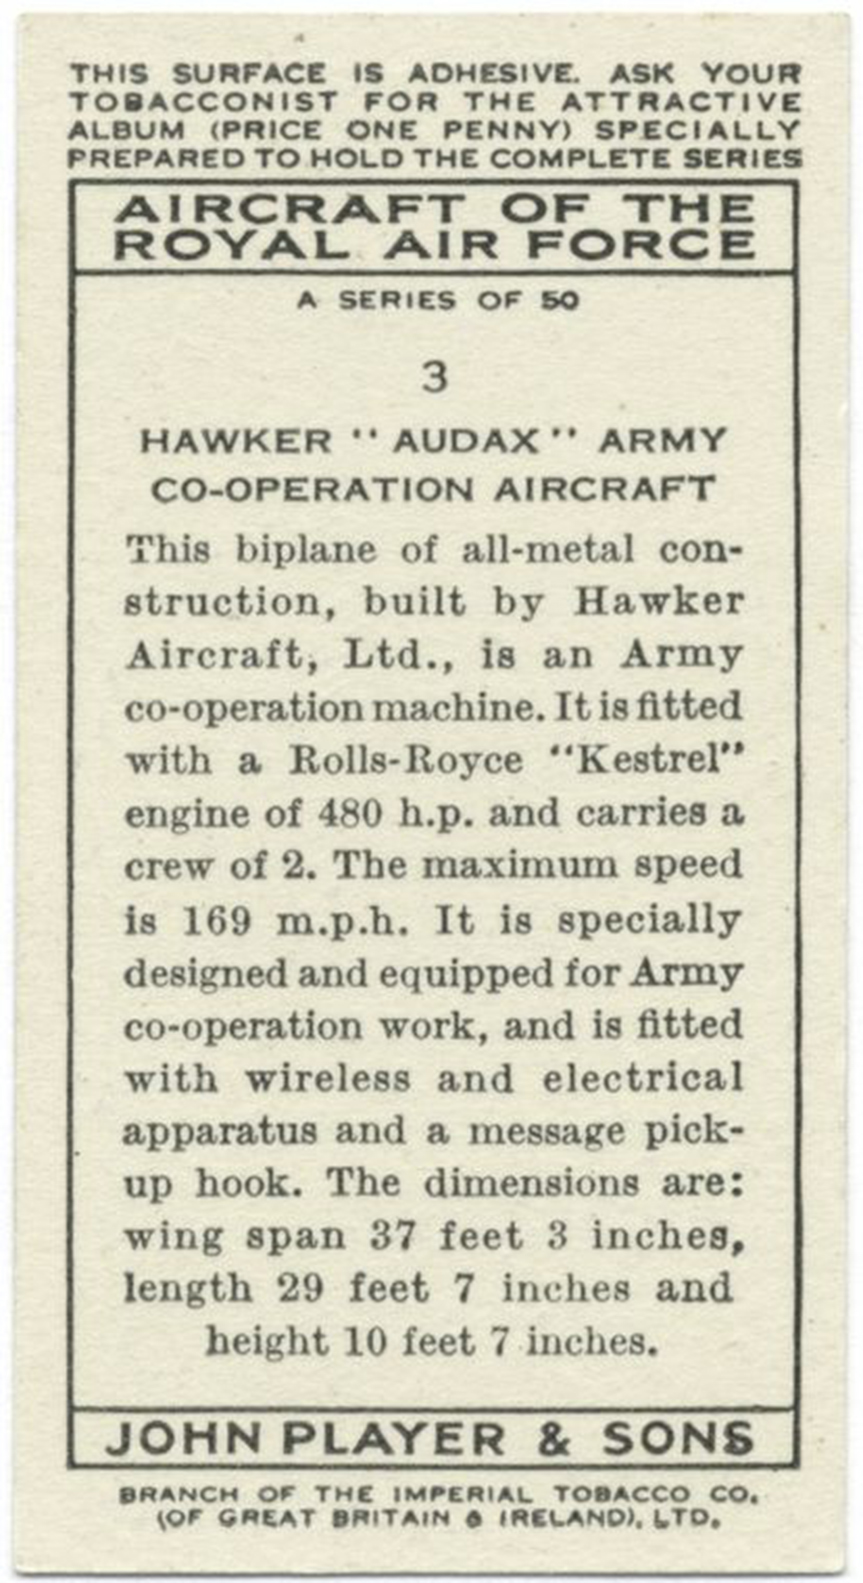 "The reverse of one of the ""Aircraft of the Royal Air Force"" series of cards included in packages of John Player & Sons cigarettes – this one depicting the Hawker Audax aircraft. The text reads: ""HAWKER 'AUDAX' ARMY CO-OPERATION AIRCRAFT. This biplane of all-metal construction, built by Hawker Aircraft, Ltd., is an Army co-operation machine. It is fitted with a Rolls-Royce 'Kestrel' engine of 480 h.p. and carries a crew of 2. The maximum speed is 169 m.p.h. [272 kilometres per hour]. It is specially designed and equipped for Army co-operation work, and is fitted with wireless and electrical apparatus and a message pick-up hook. The dimensions are: wing span 37 feet 3 inches [11.4 metres], length 29 feet 7 inches [9.1 metres] and height 10 feet 7 inches [3.3 metres]."" IMAGE: New York Public Library"